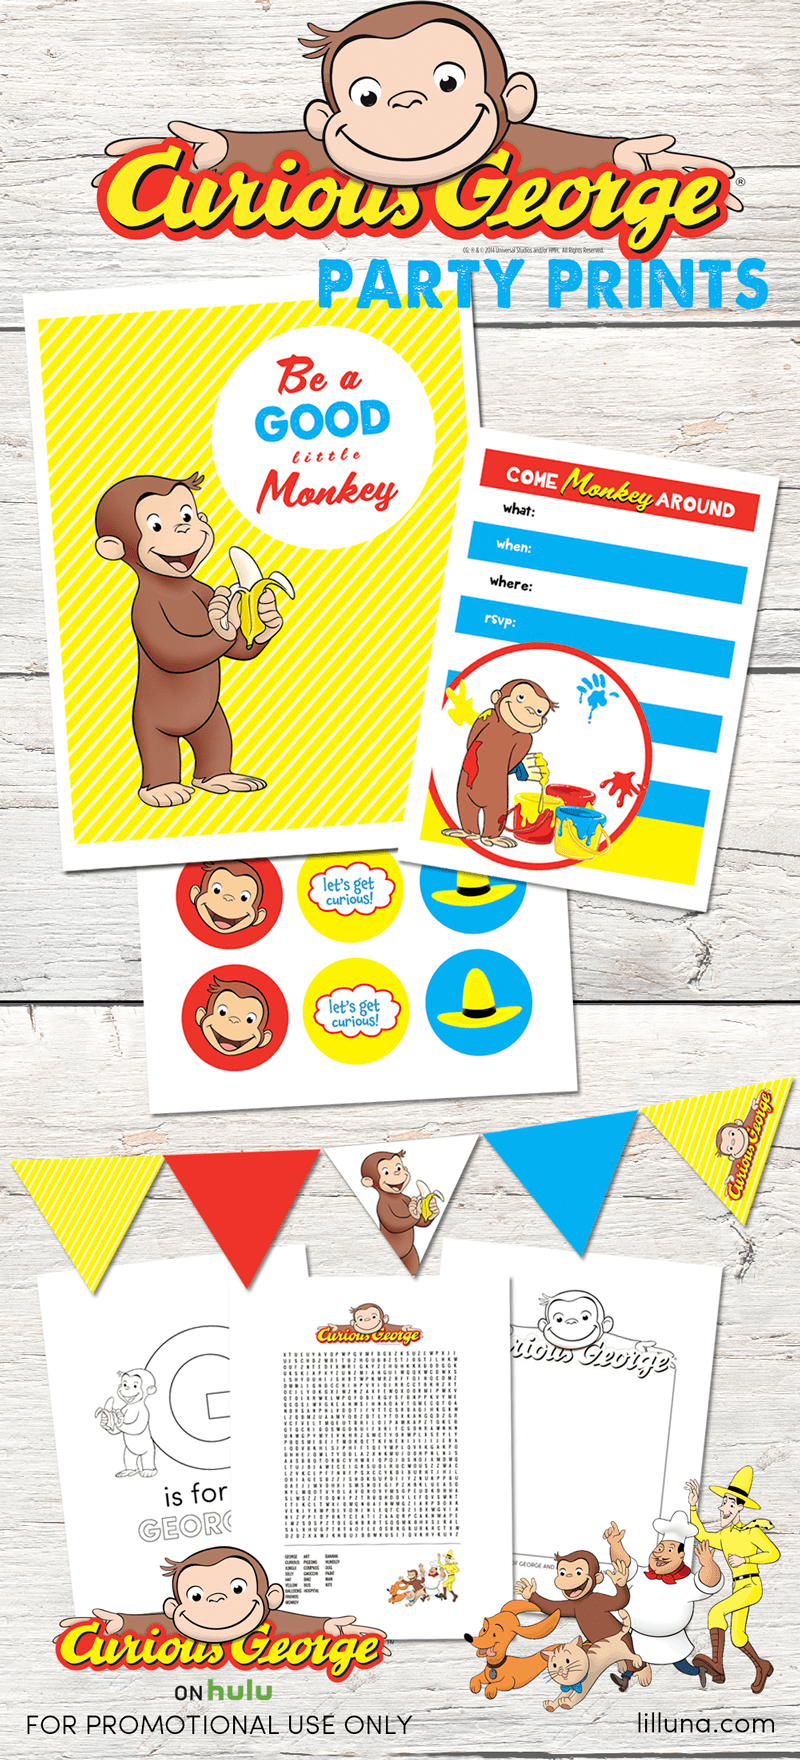 Homemade Monkey Bark, Monkey Pudding Pies, and FREE Curious George Party Printables to celebrate Curious George streaming exclusively on Hulu!! #ad